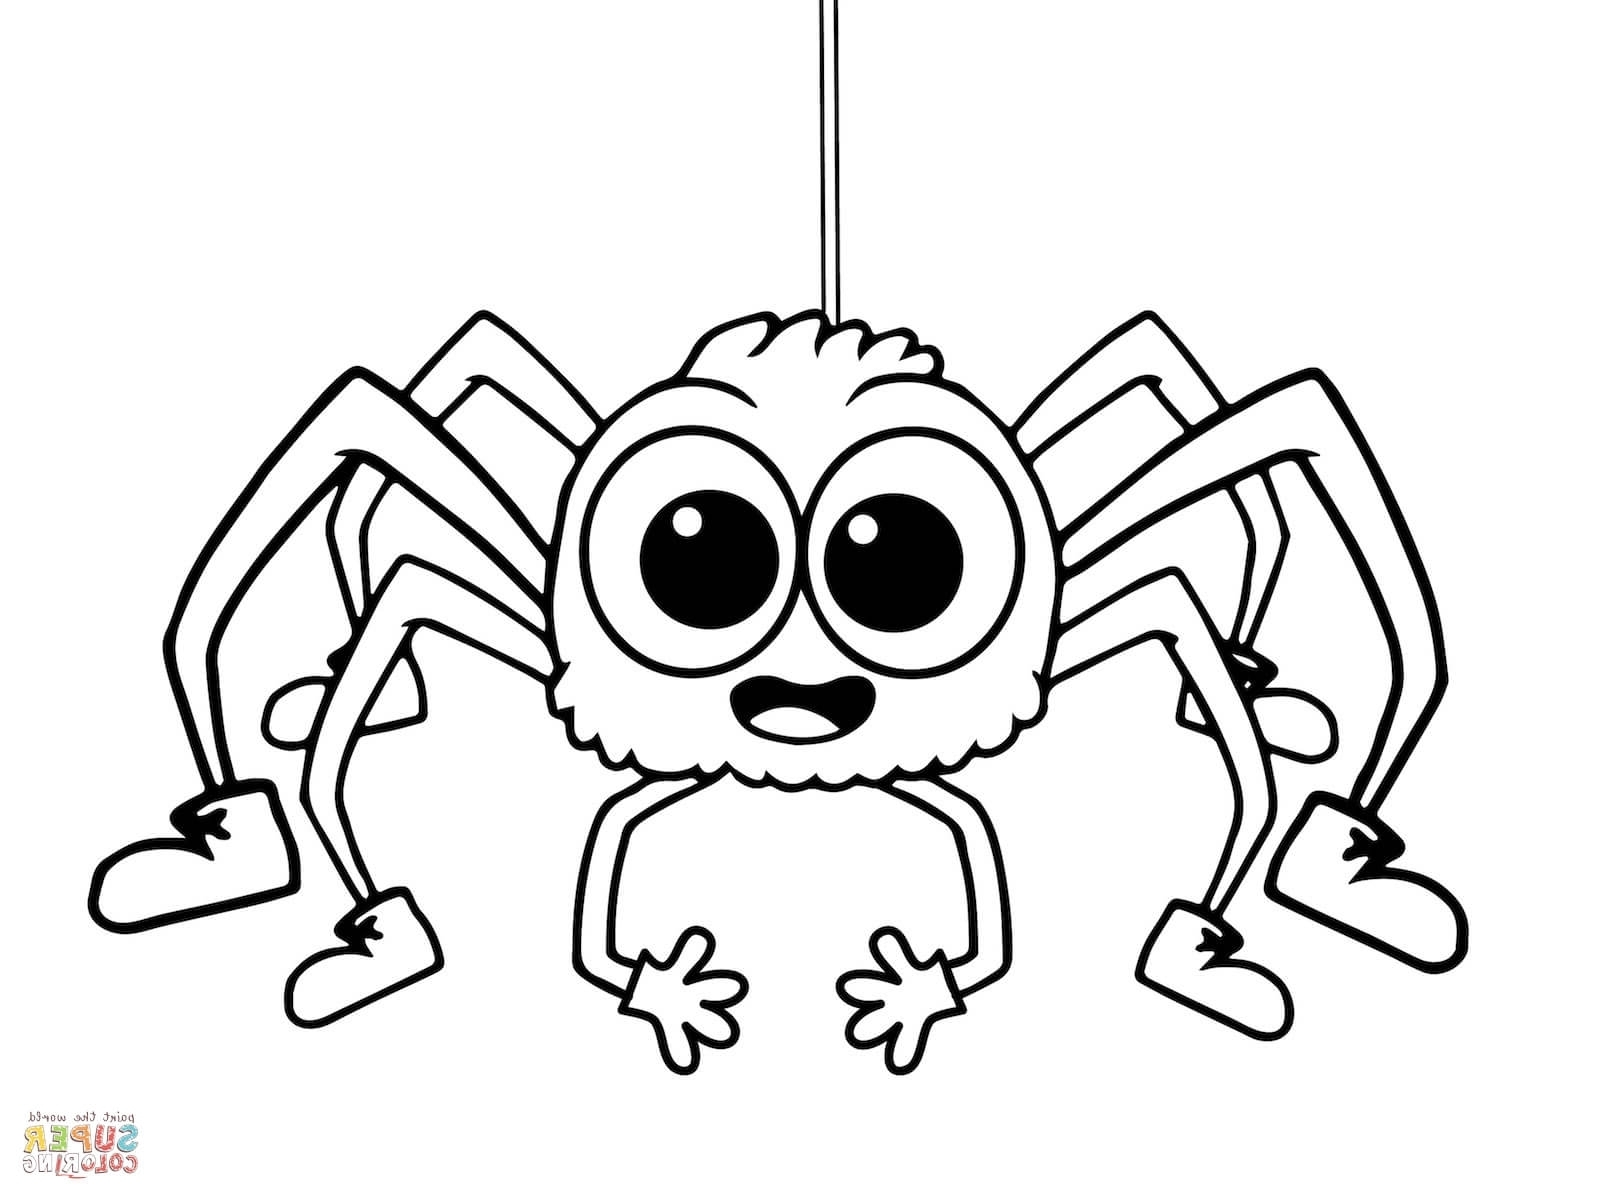 spider coloring pages - incy wincy spider coloring pages incy wincy spider coloring page free printable coloring pages